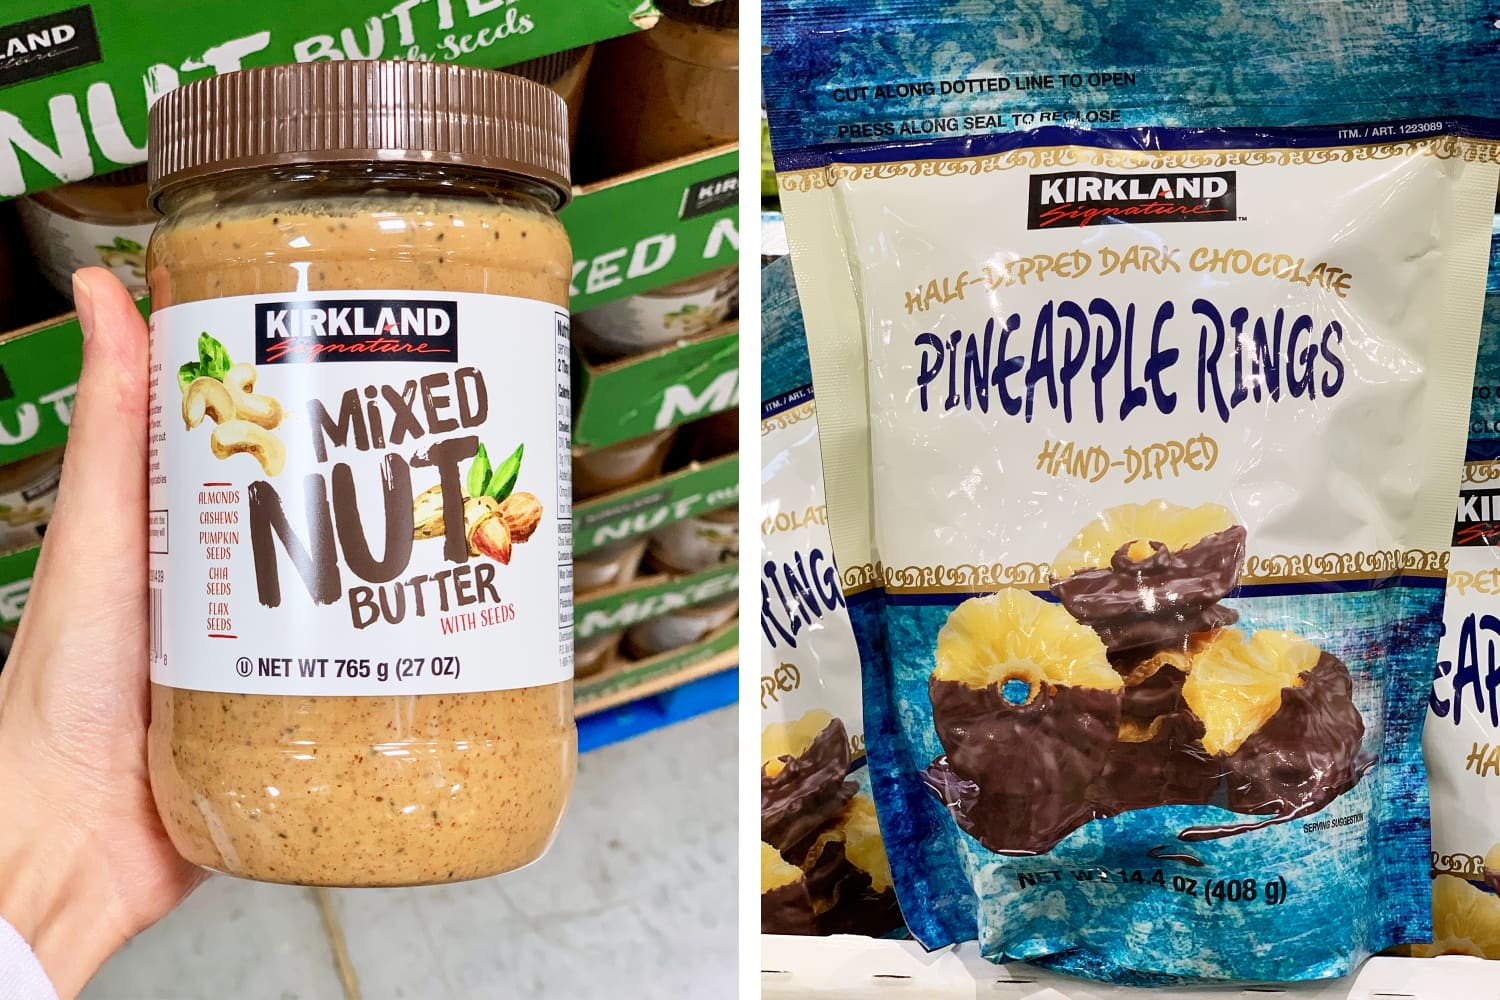 The Best New Kirkland Signature Products to Hit Costco Shelves This Year